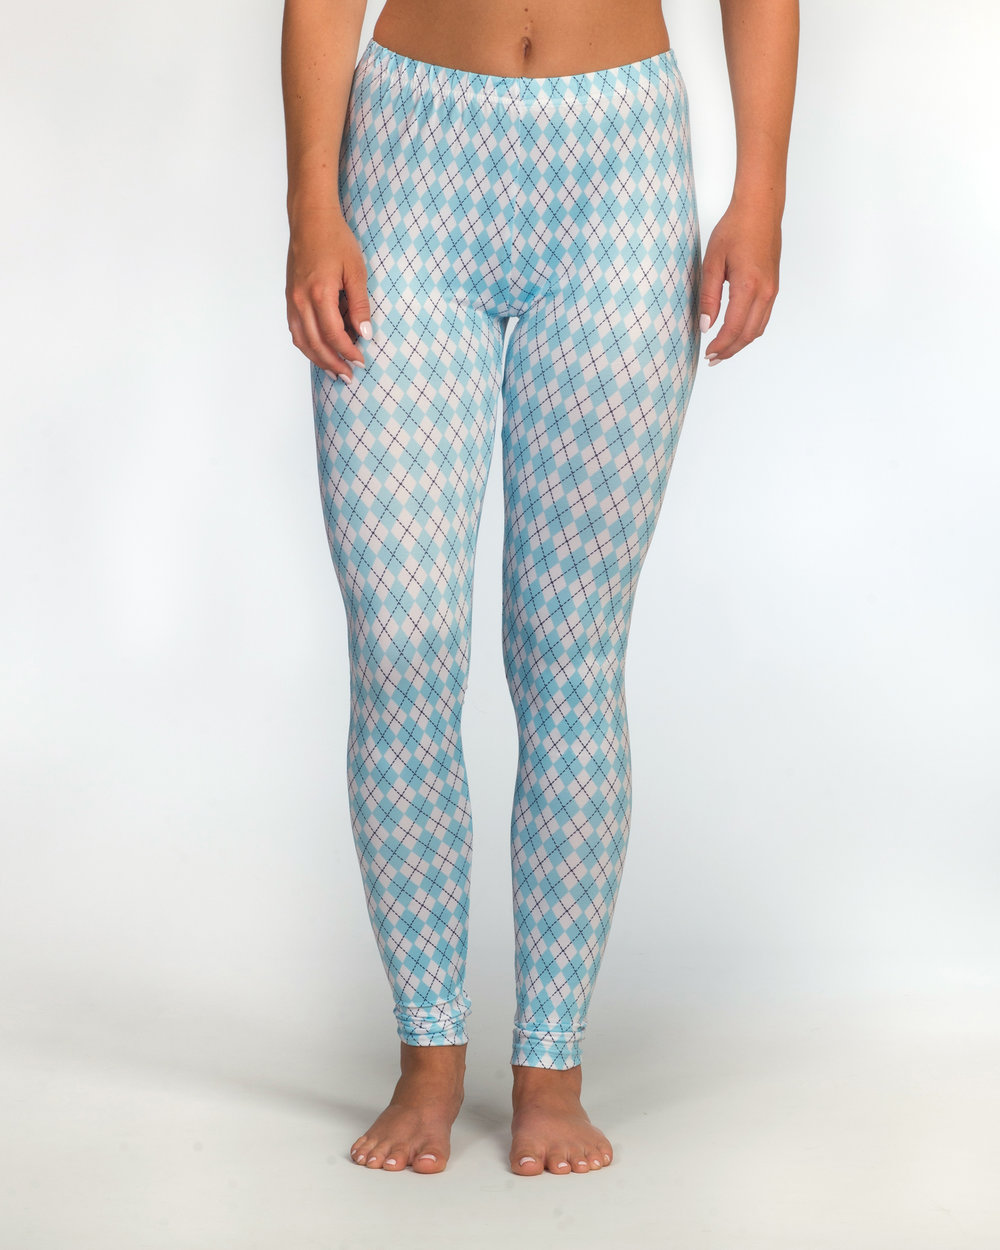 "is 5' 6"" tall, has 31"" hips, and is rockin' a size S in UNC Argyle Gameday Leggings"